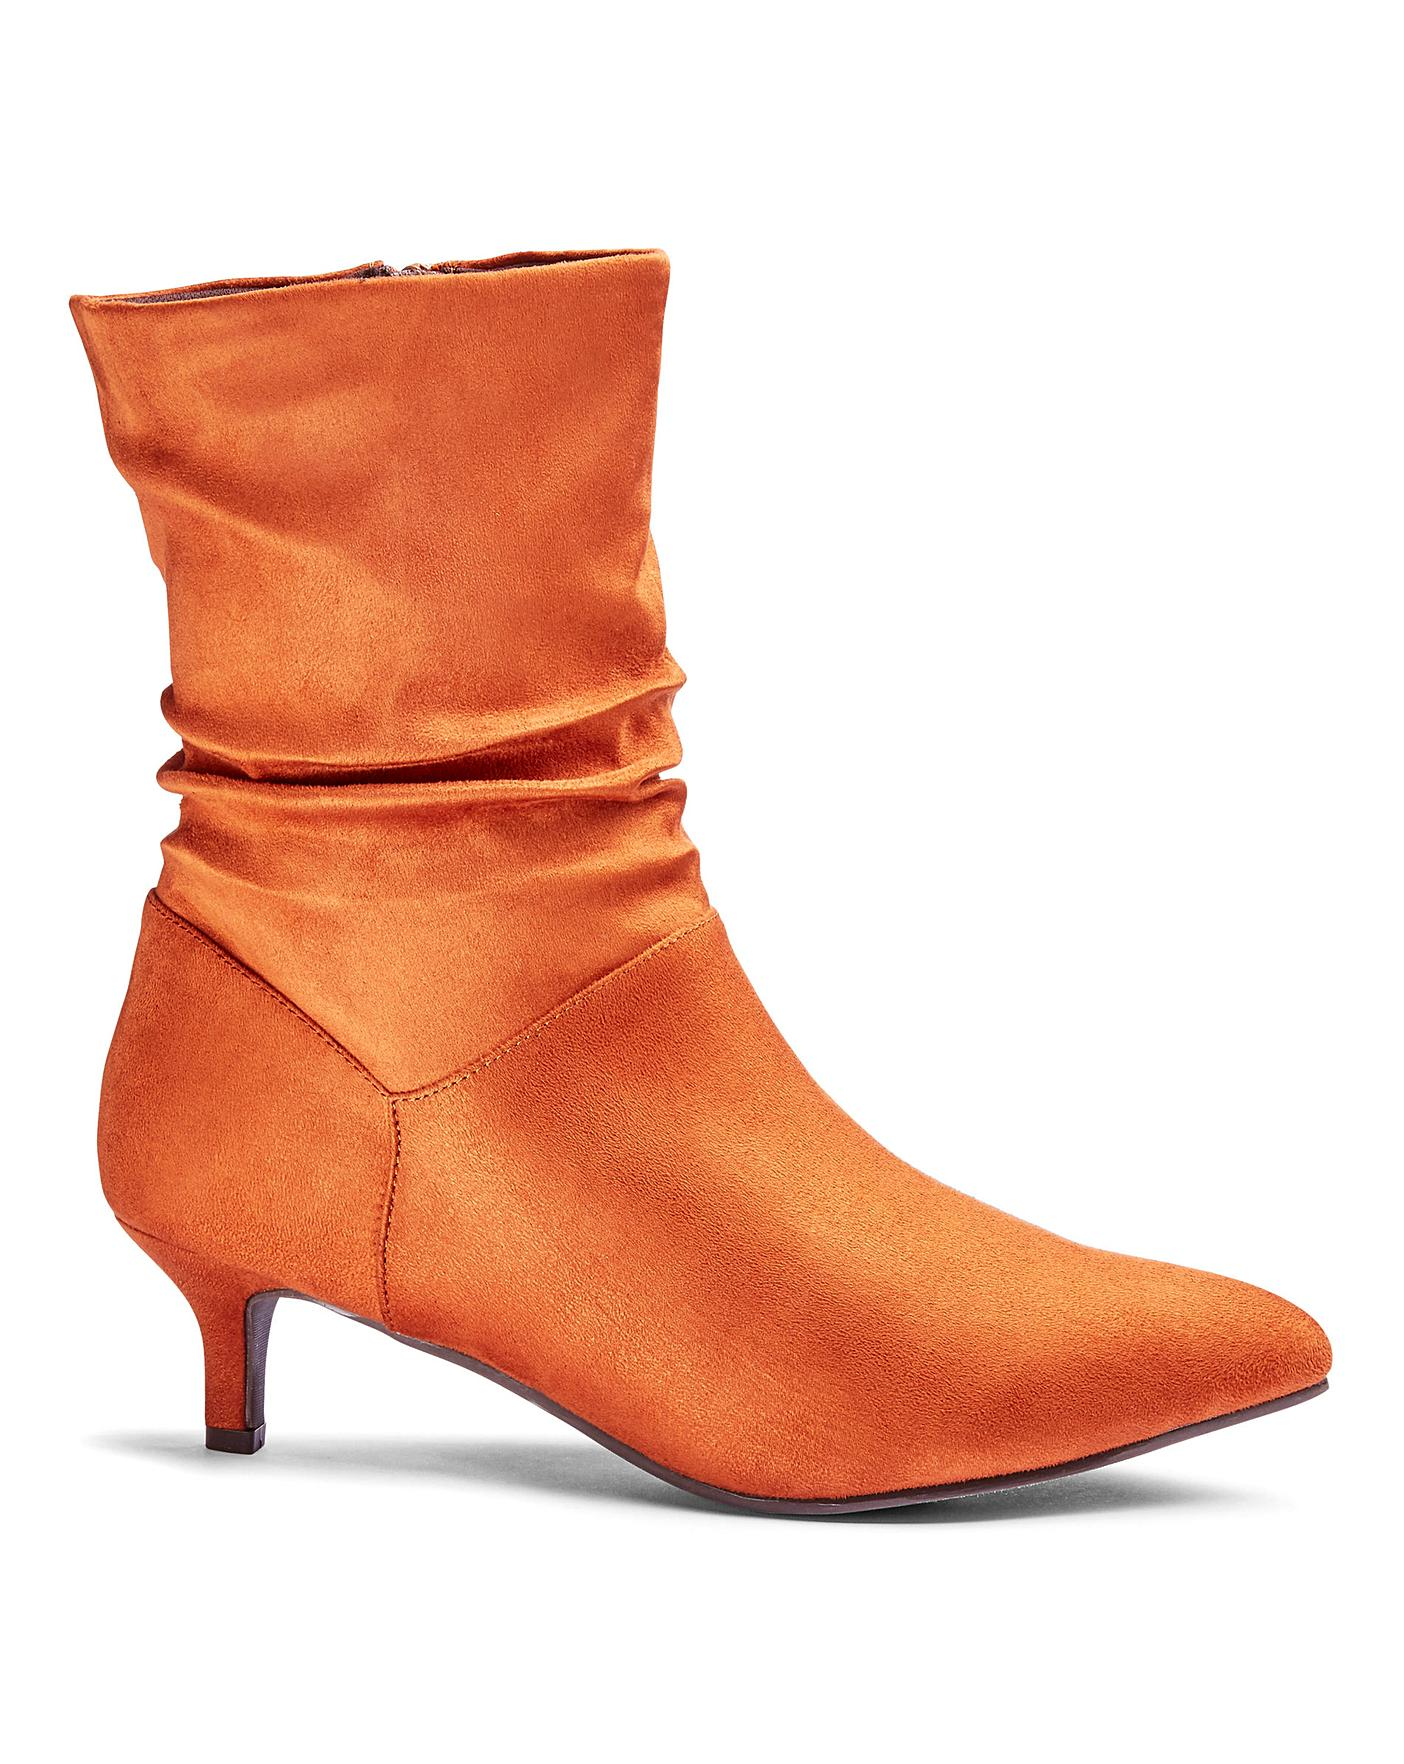 best selling for whole family factory outlets Flexi Sole Ruched Ankle Boots E Fit | Simply Be